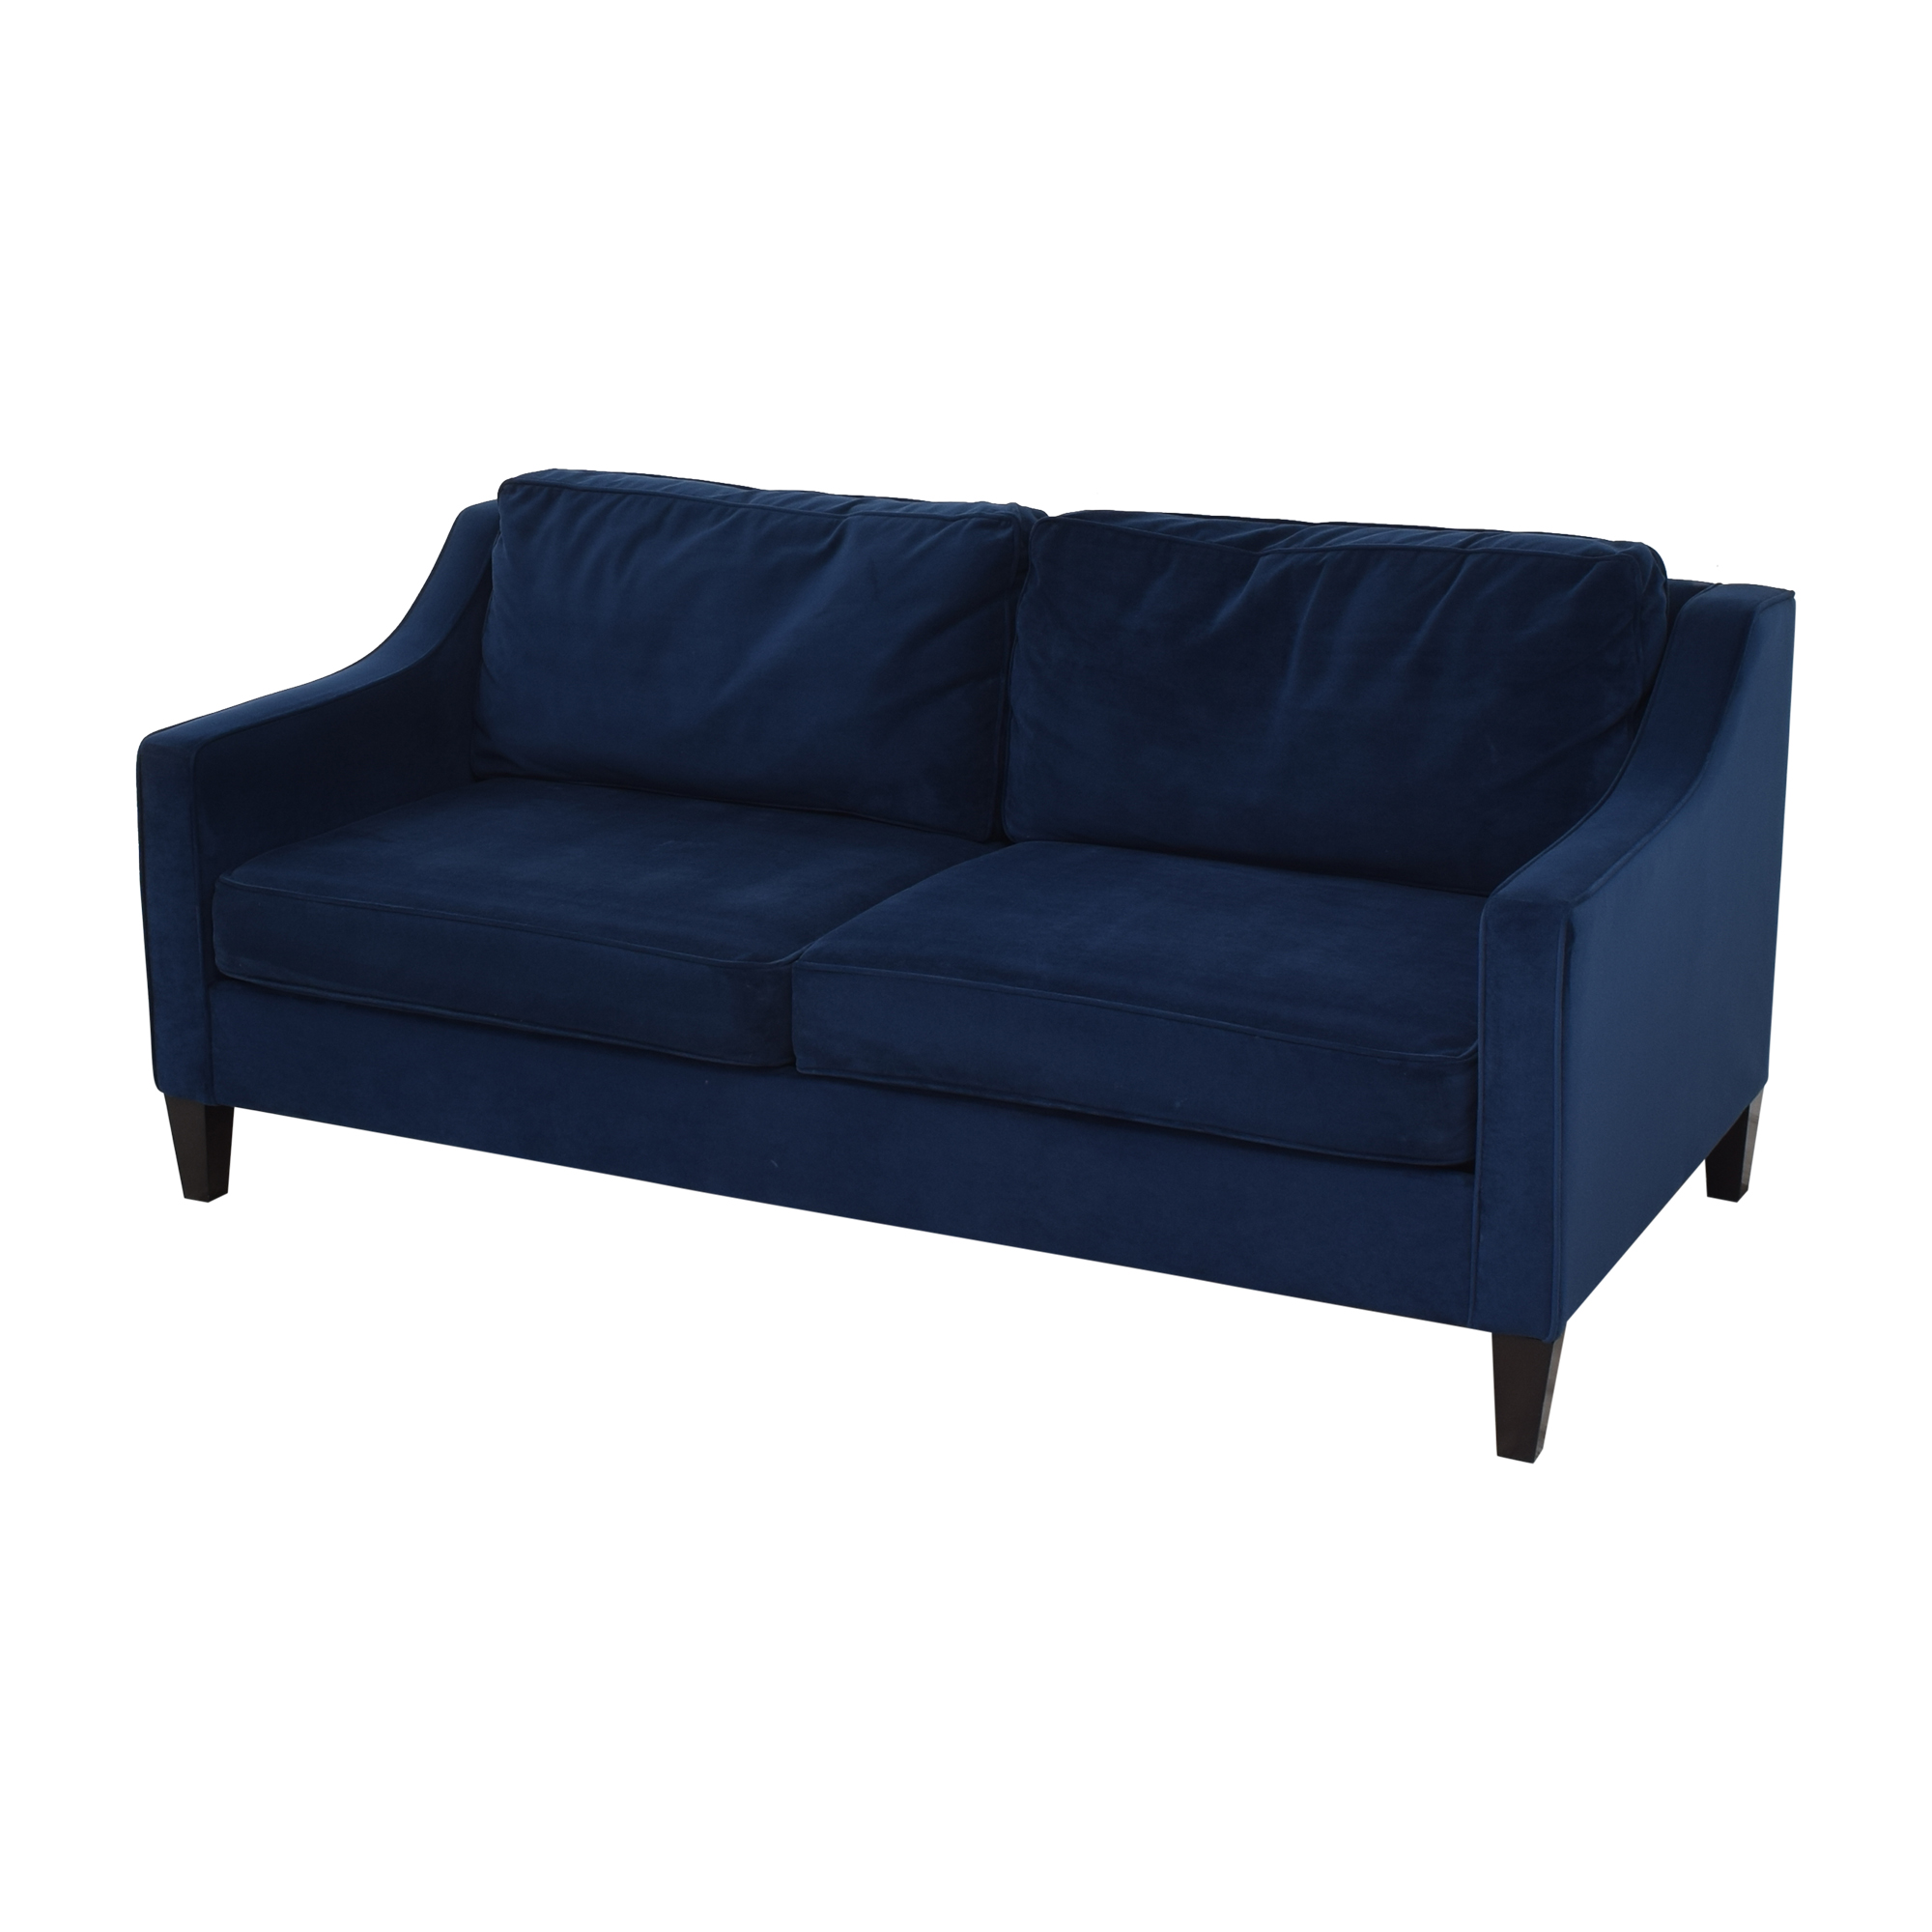 West Elm West Elm Paidge Sofa